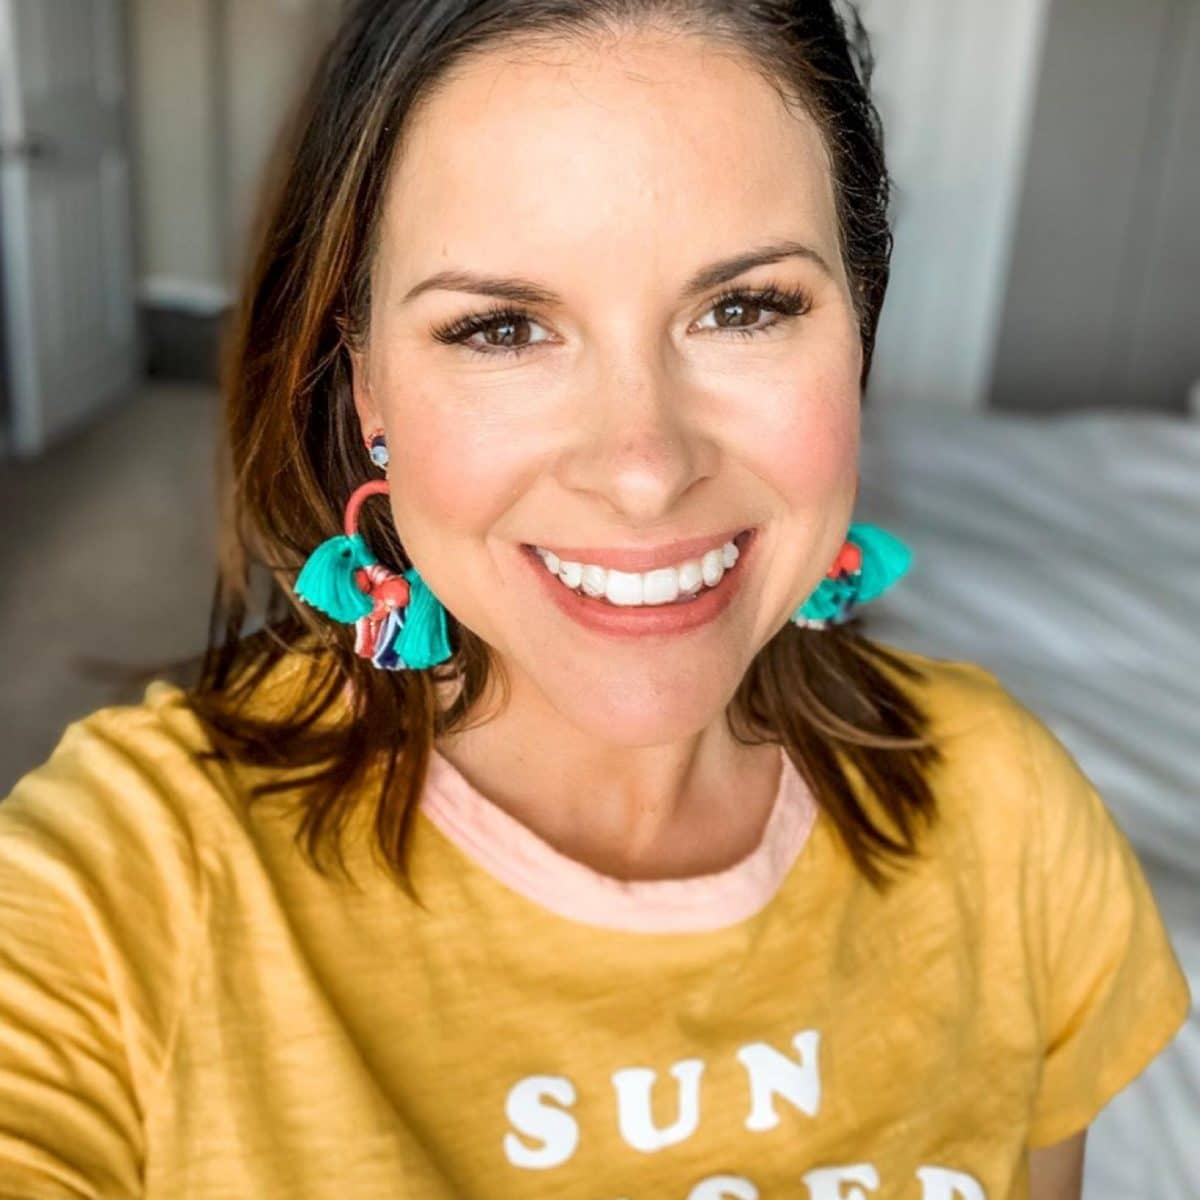 brunette woman in yellow shirt smiles with lash extensions